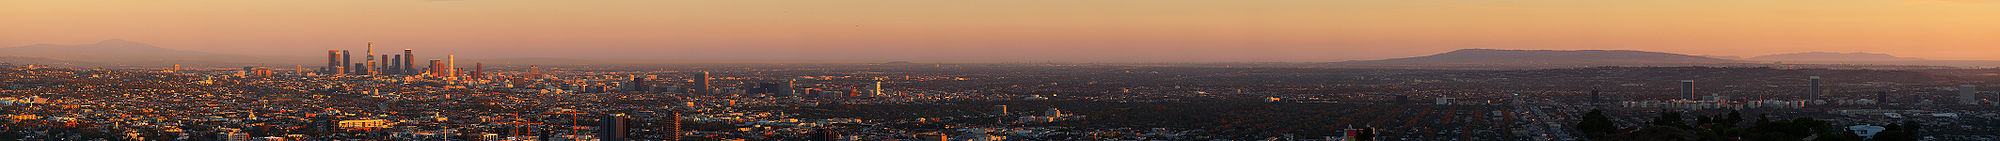 Panorama of Los Angeles as viewed from Mulholland Drive. Left to right: Mountains, downtown, Hollywood (foreground), Wilshire Boulevard, Port of Los Angeles, Palos Verdes Peninsula, Santa Catalina Island, and LAX.